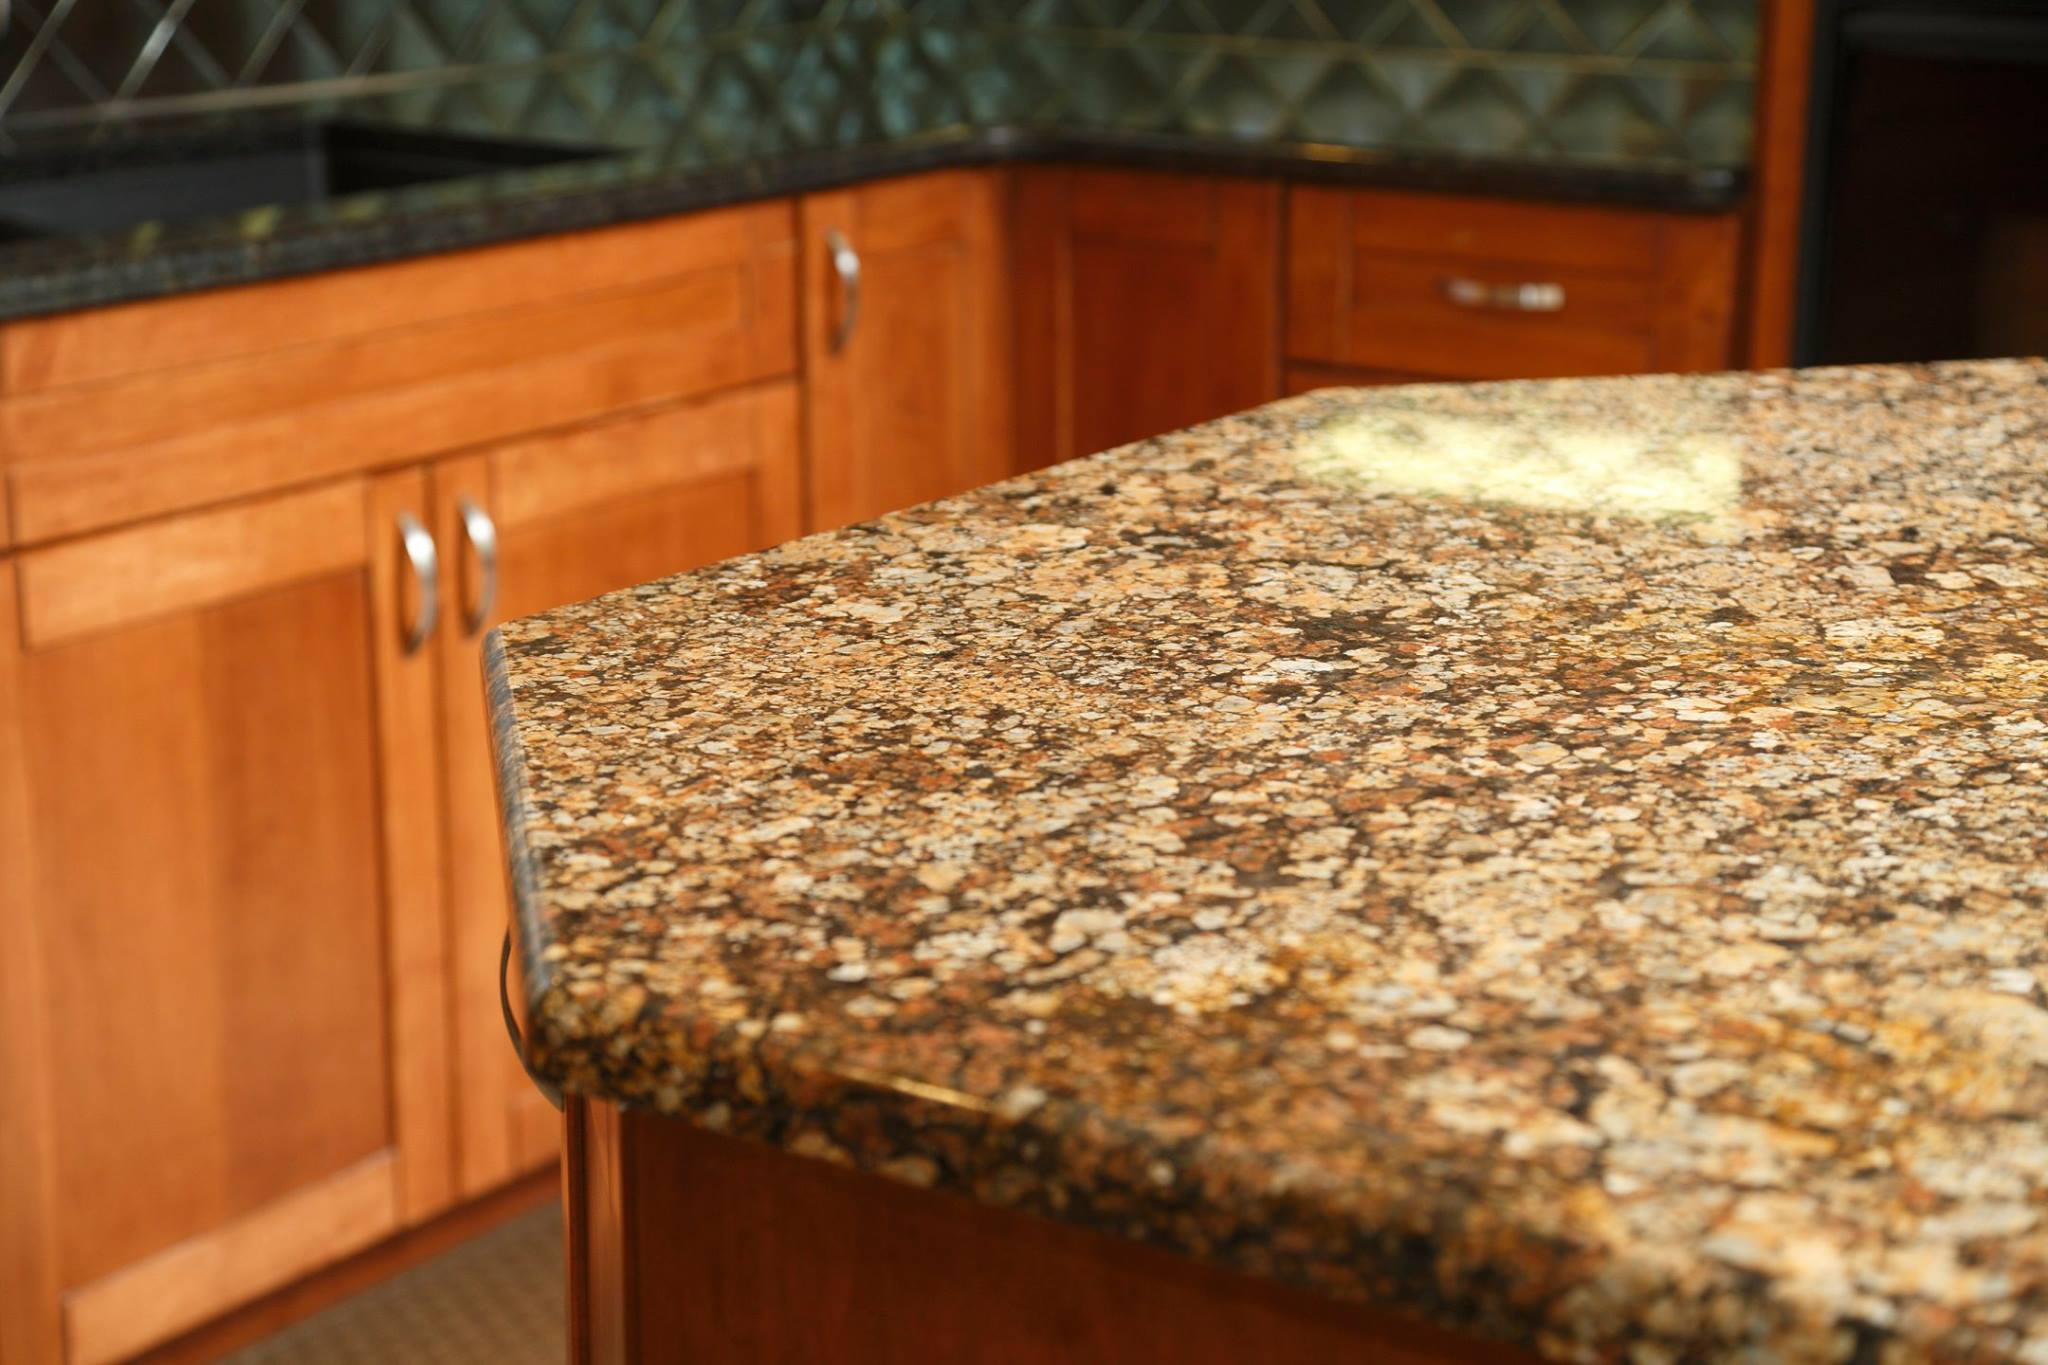 Kitchen Counter Close Up kitchen counter close up with window ~ furniture inspiration